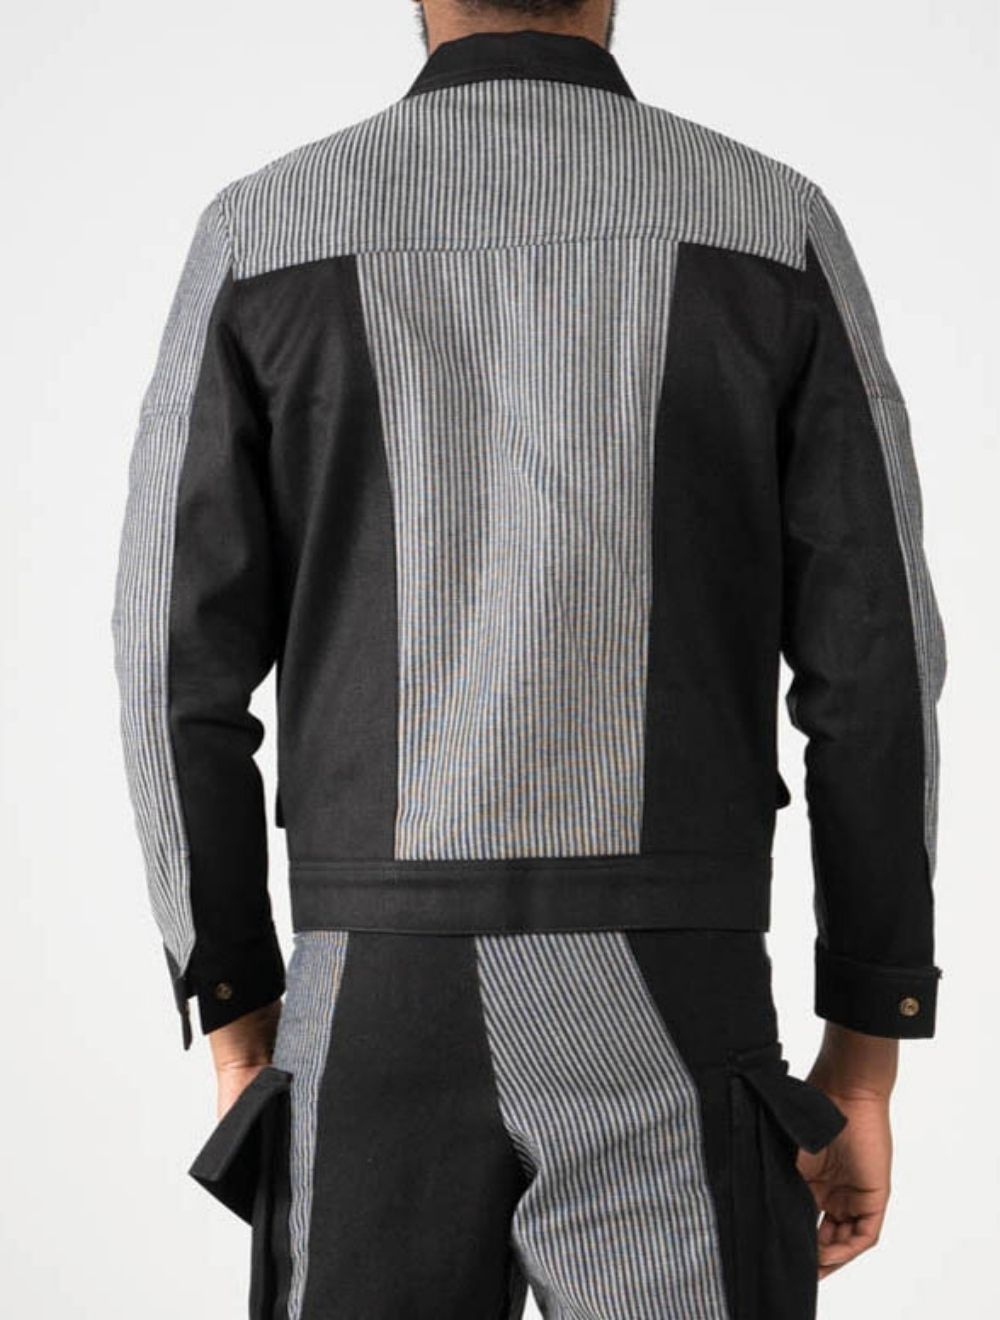 3D Glitch striped jacket – Back